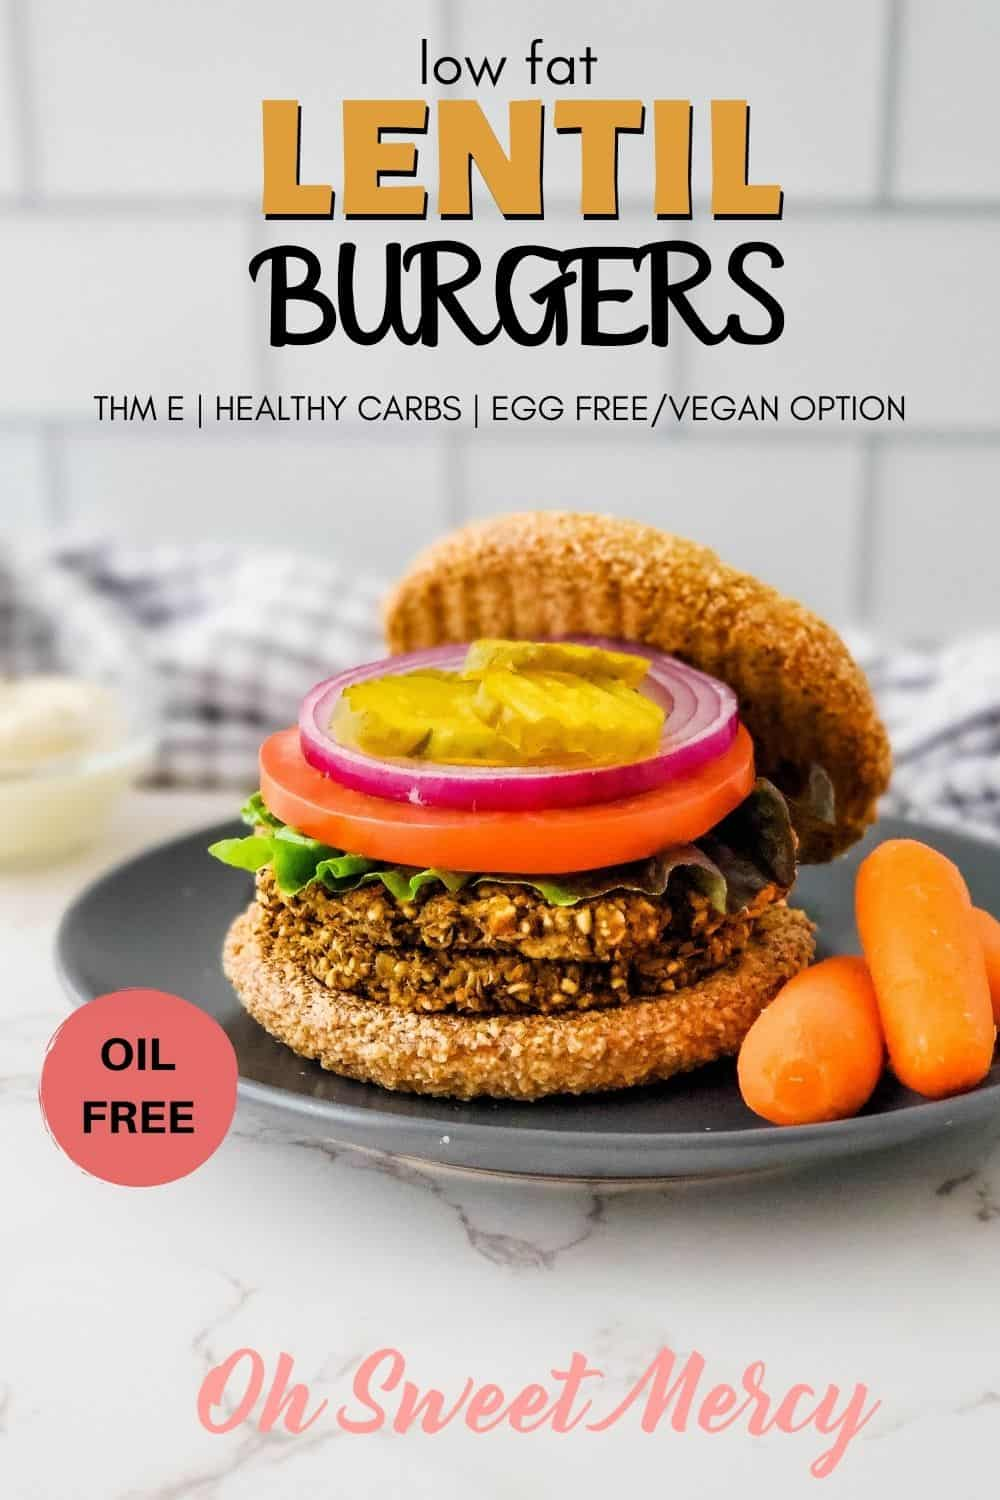 My Low Fat Lentil Burgers are so good even non-THM and meat eaters love them! Healthy carbs, no added fat, with egg free/vegan option, too. They freeze well so great for meal prep to have easy, healthy THM E meals on hand. #lowfat #healthycarbs #thm #eggfree #vegan #lentilburgers #lentils @ohsweetmercy